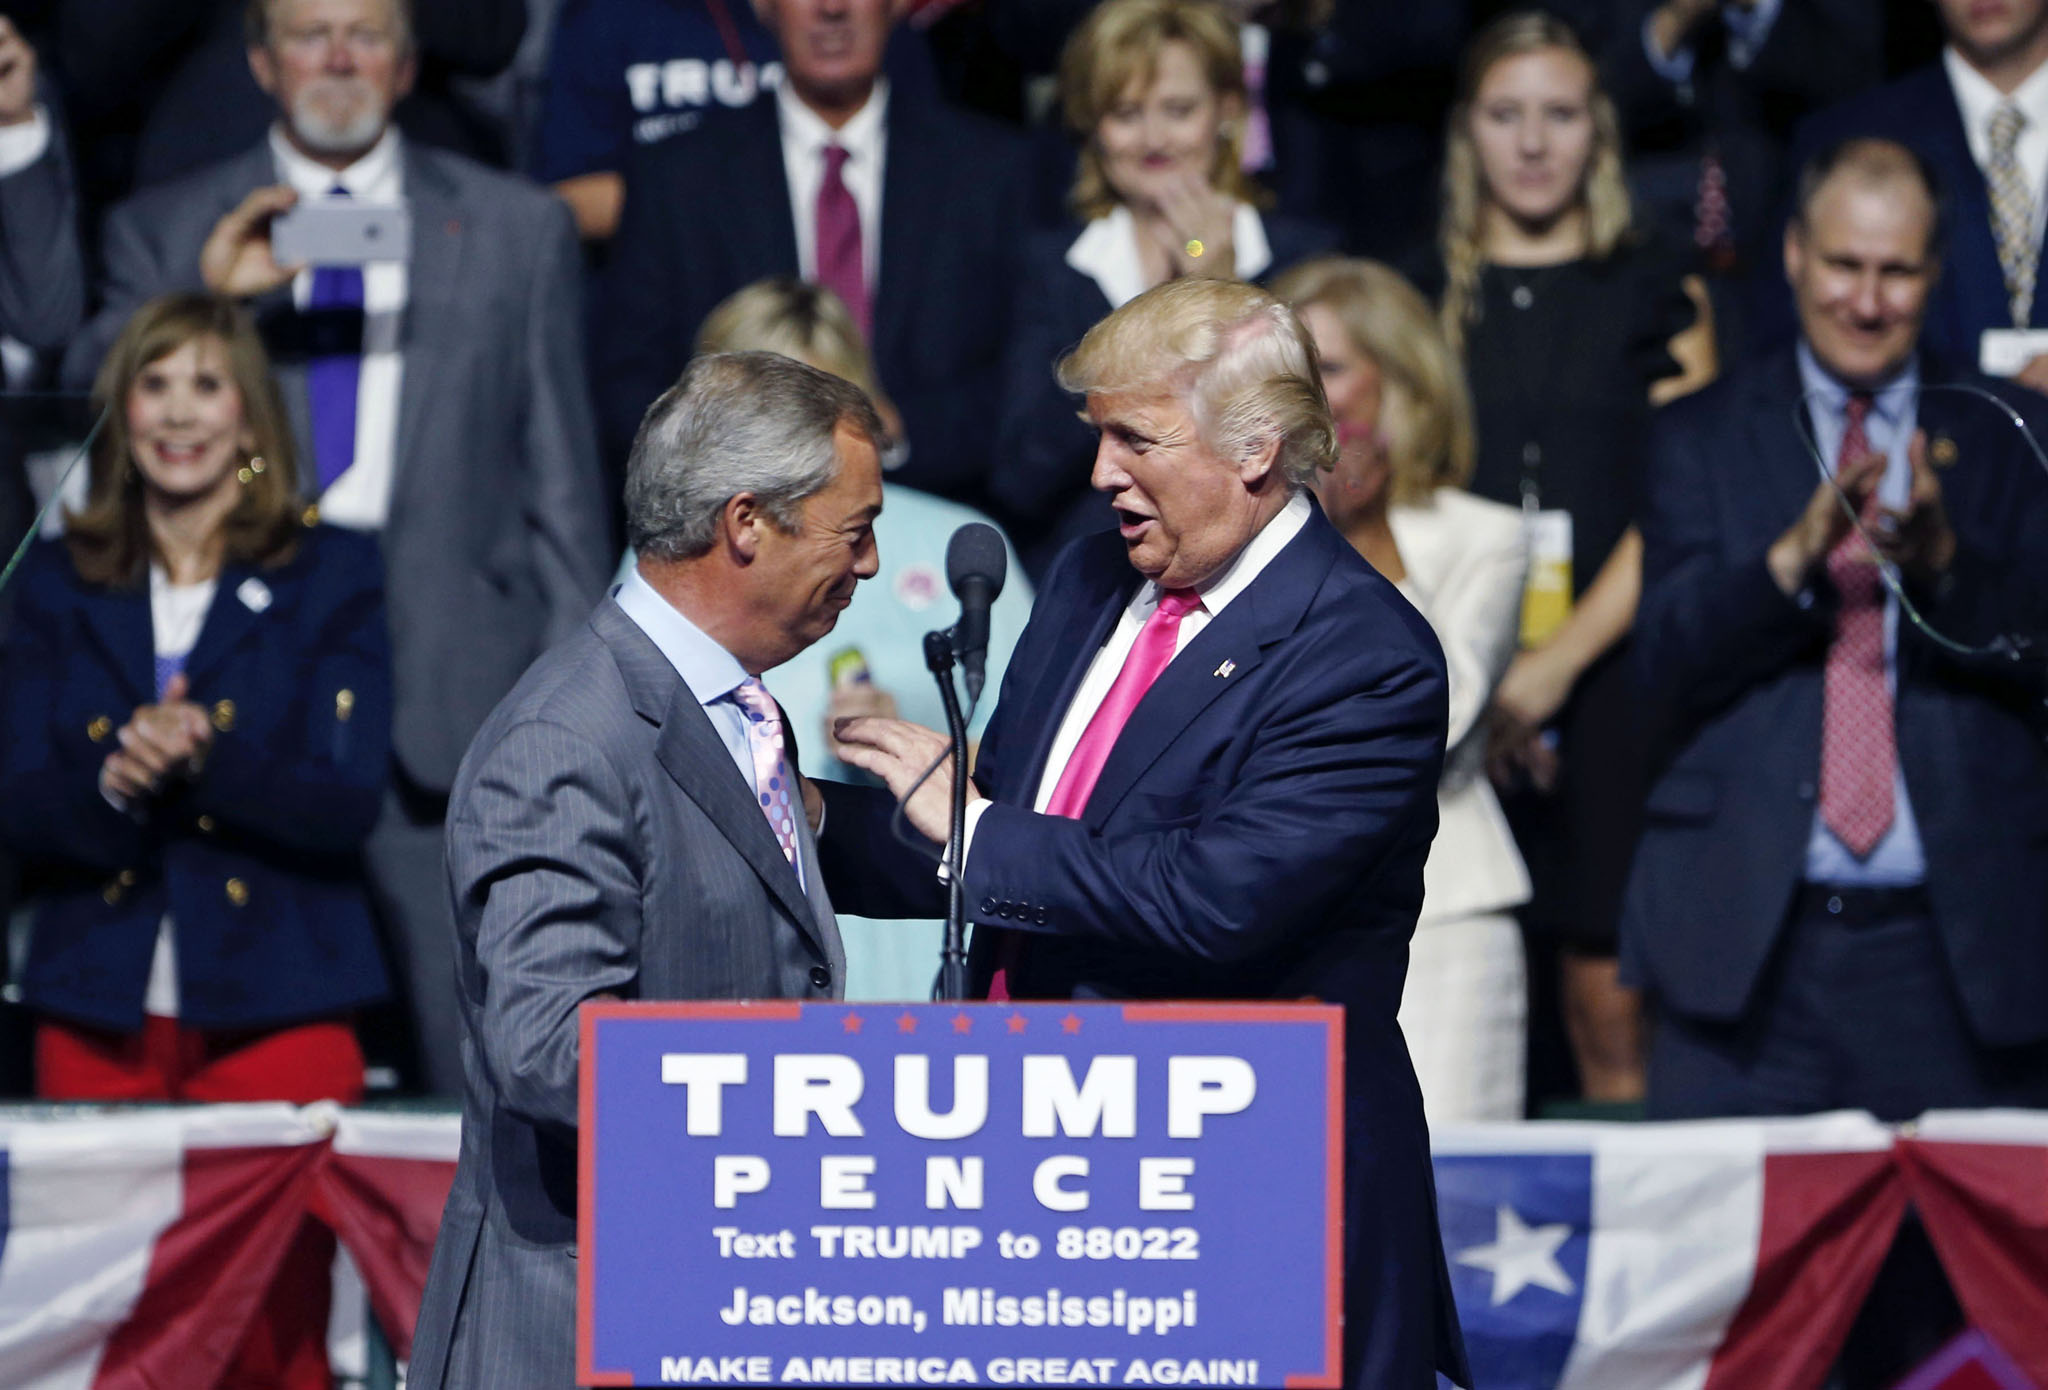 Republican presidential candidate Donald Trump welcomes Nigel Farage, ex-leader of the British UKIP party, to speak at a campaign rally in Jackson, Miss